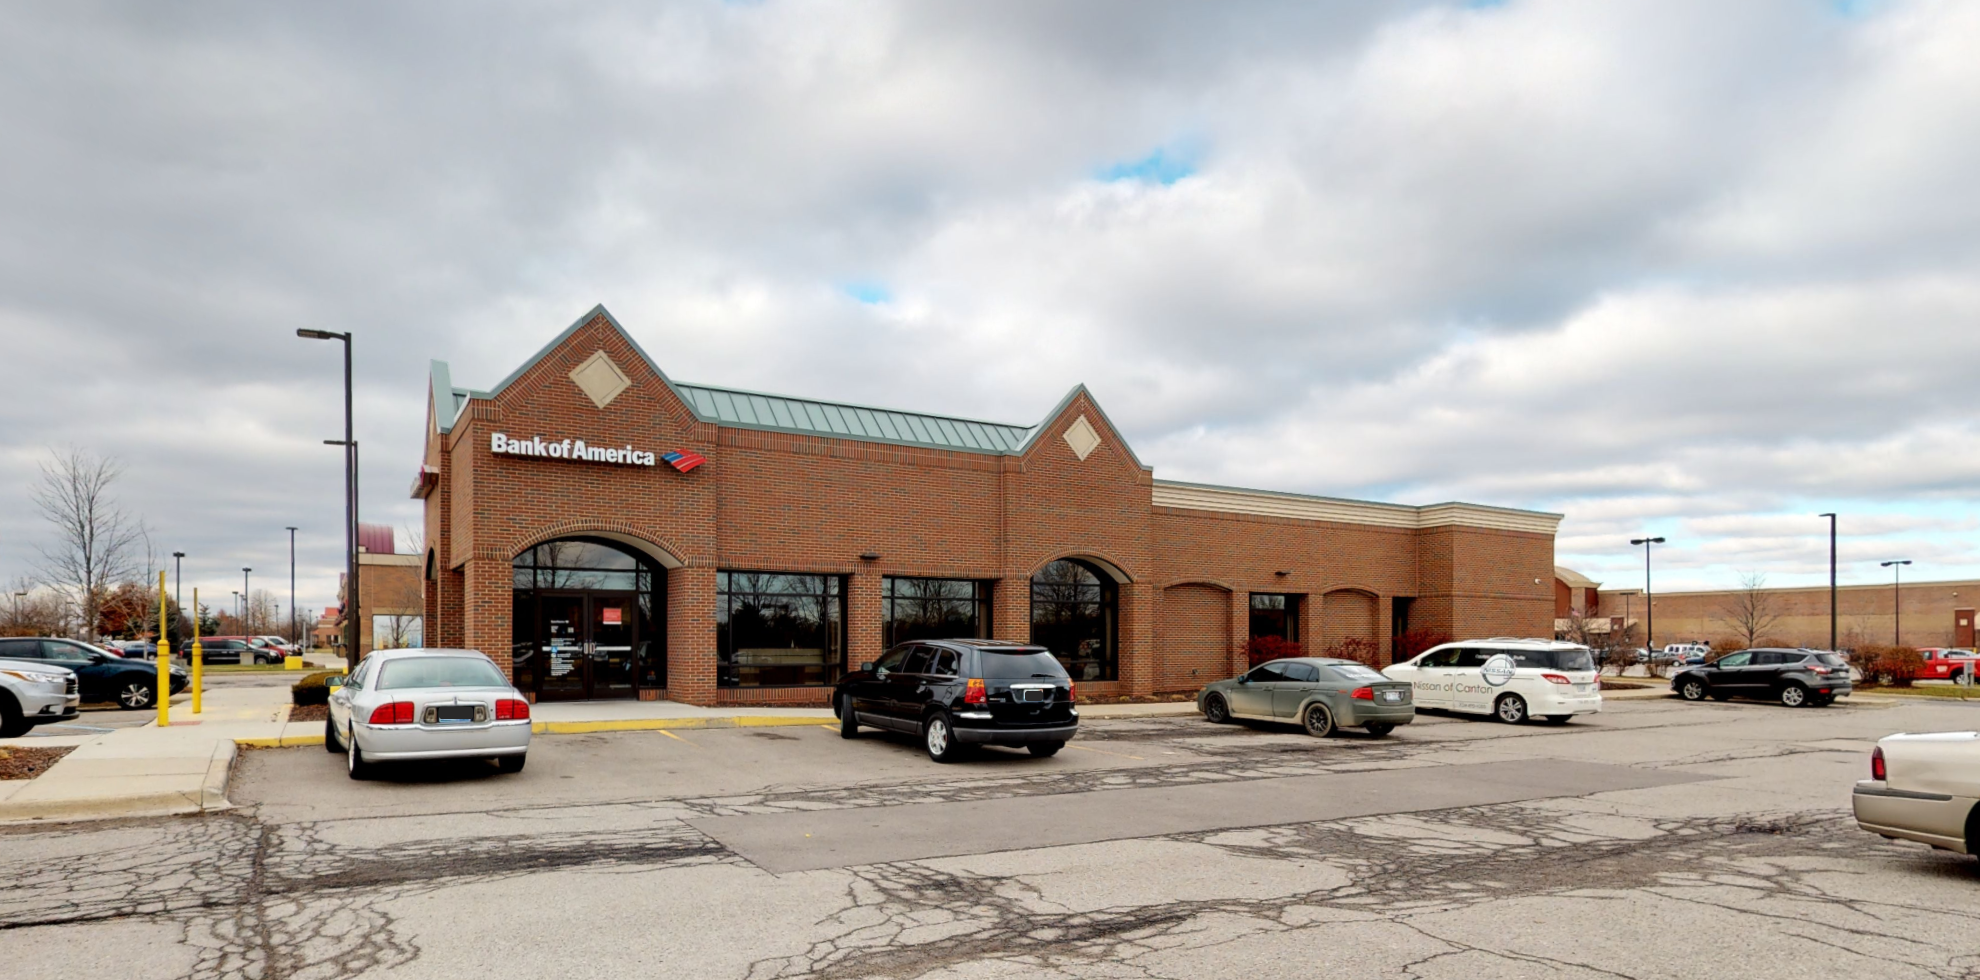 Bank of America financial center with drive-thru ATM   45850 Michigan Ave, Canton, MI 48188